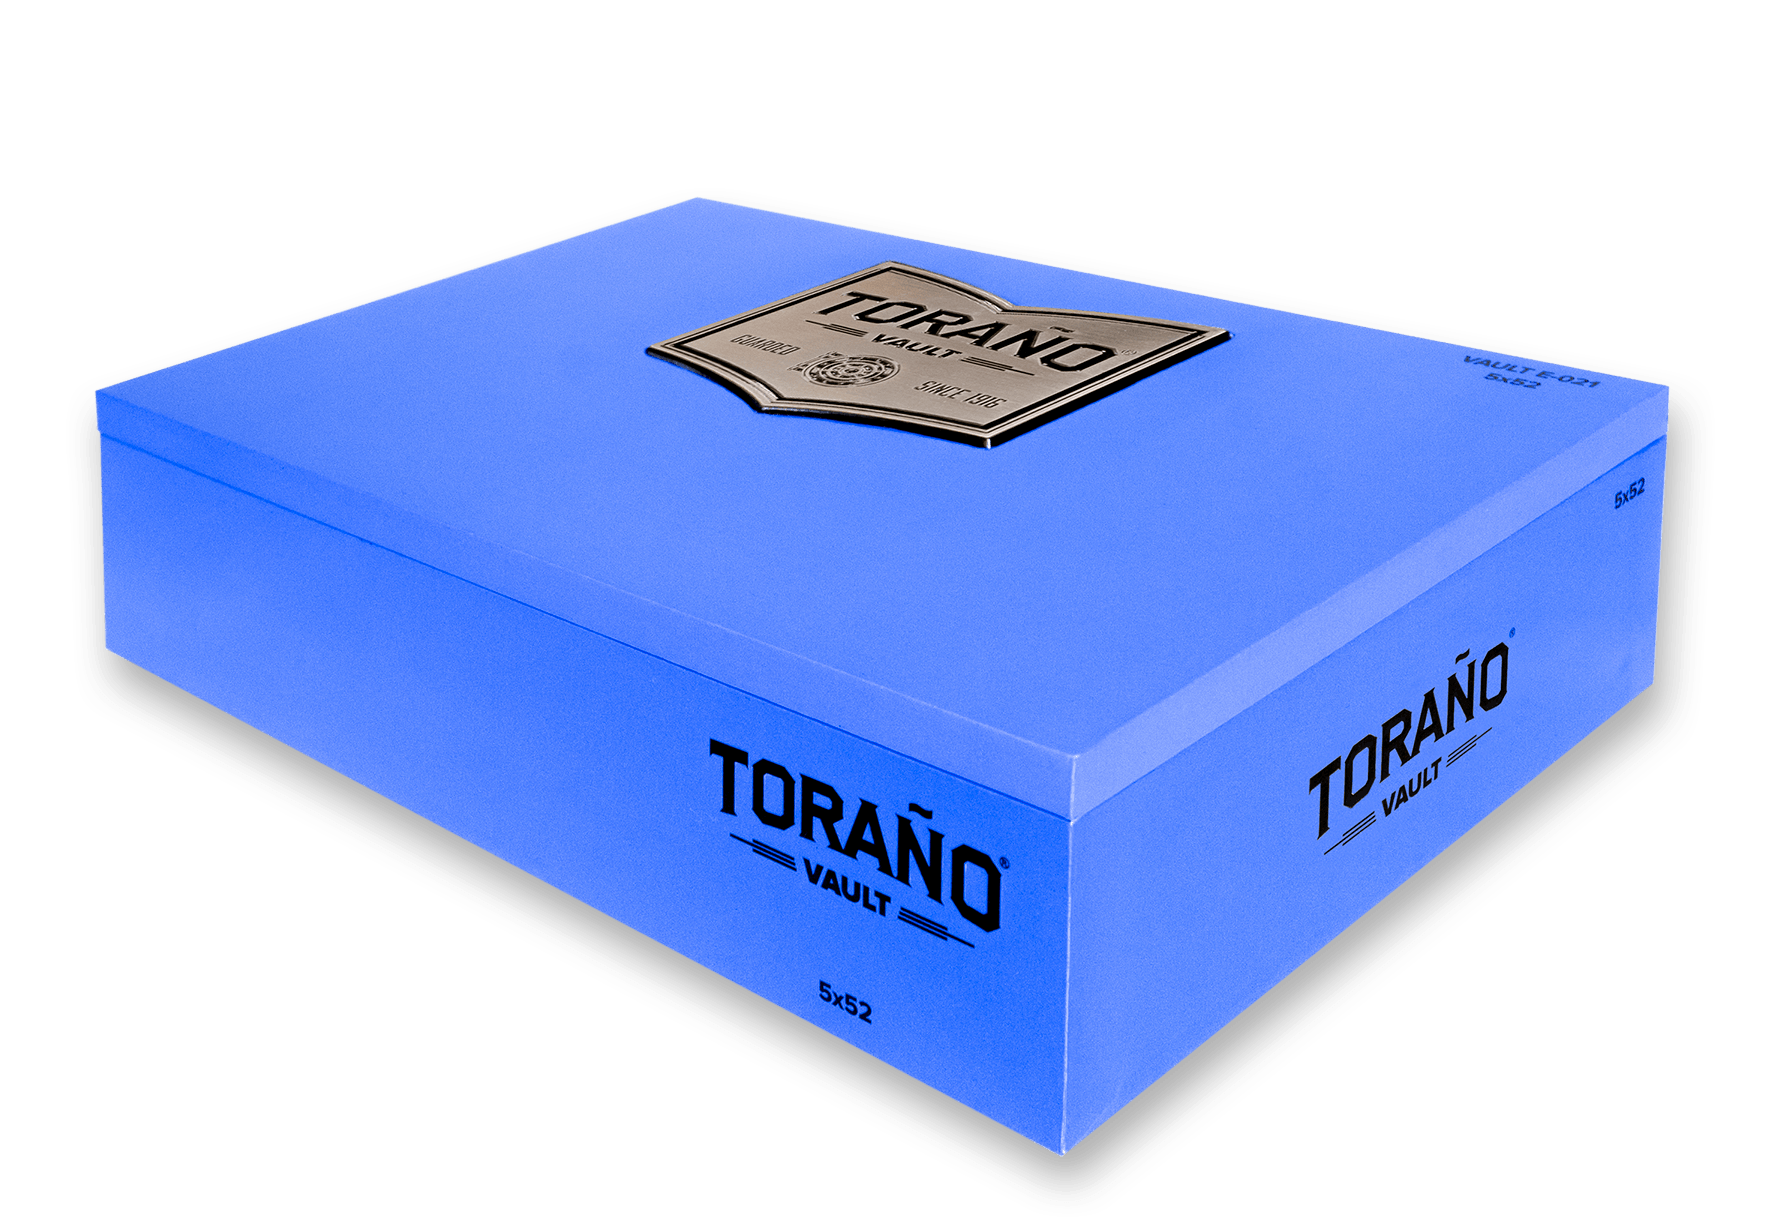 Toraño Vault E-021 Closed Box